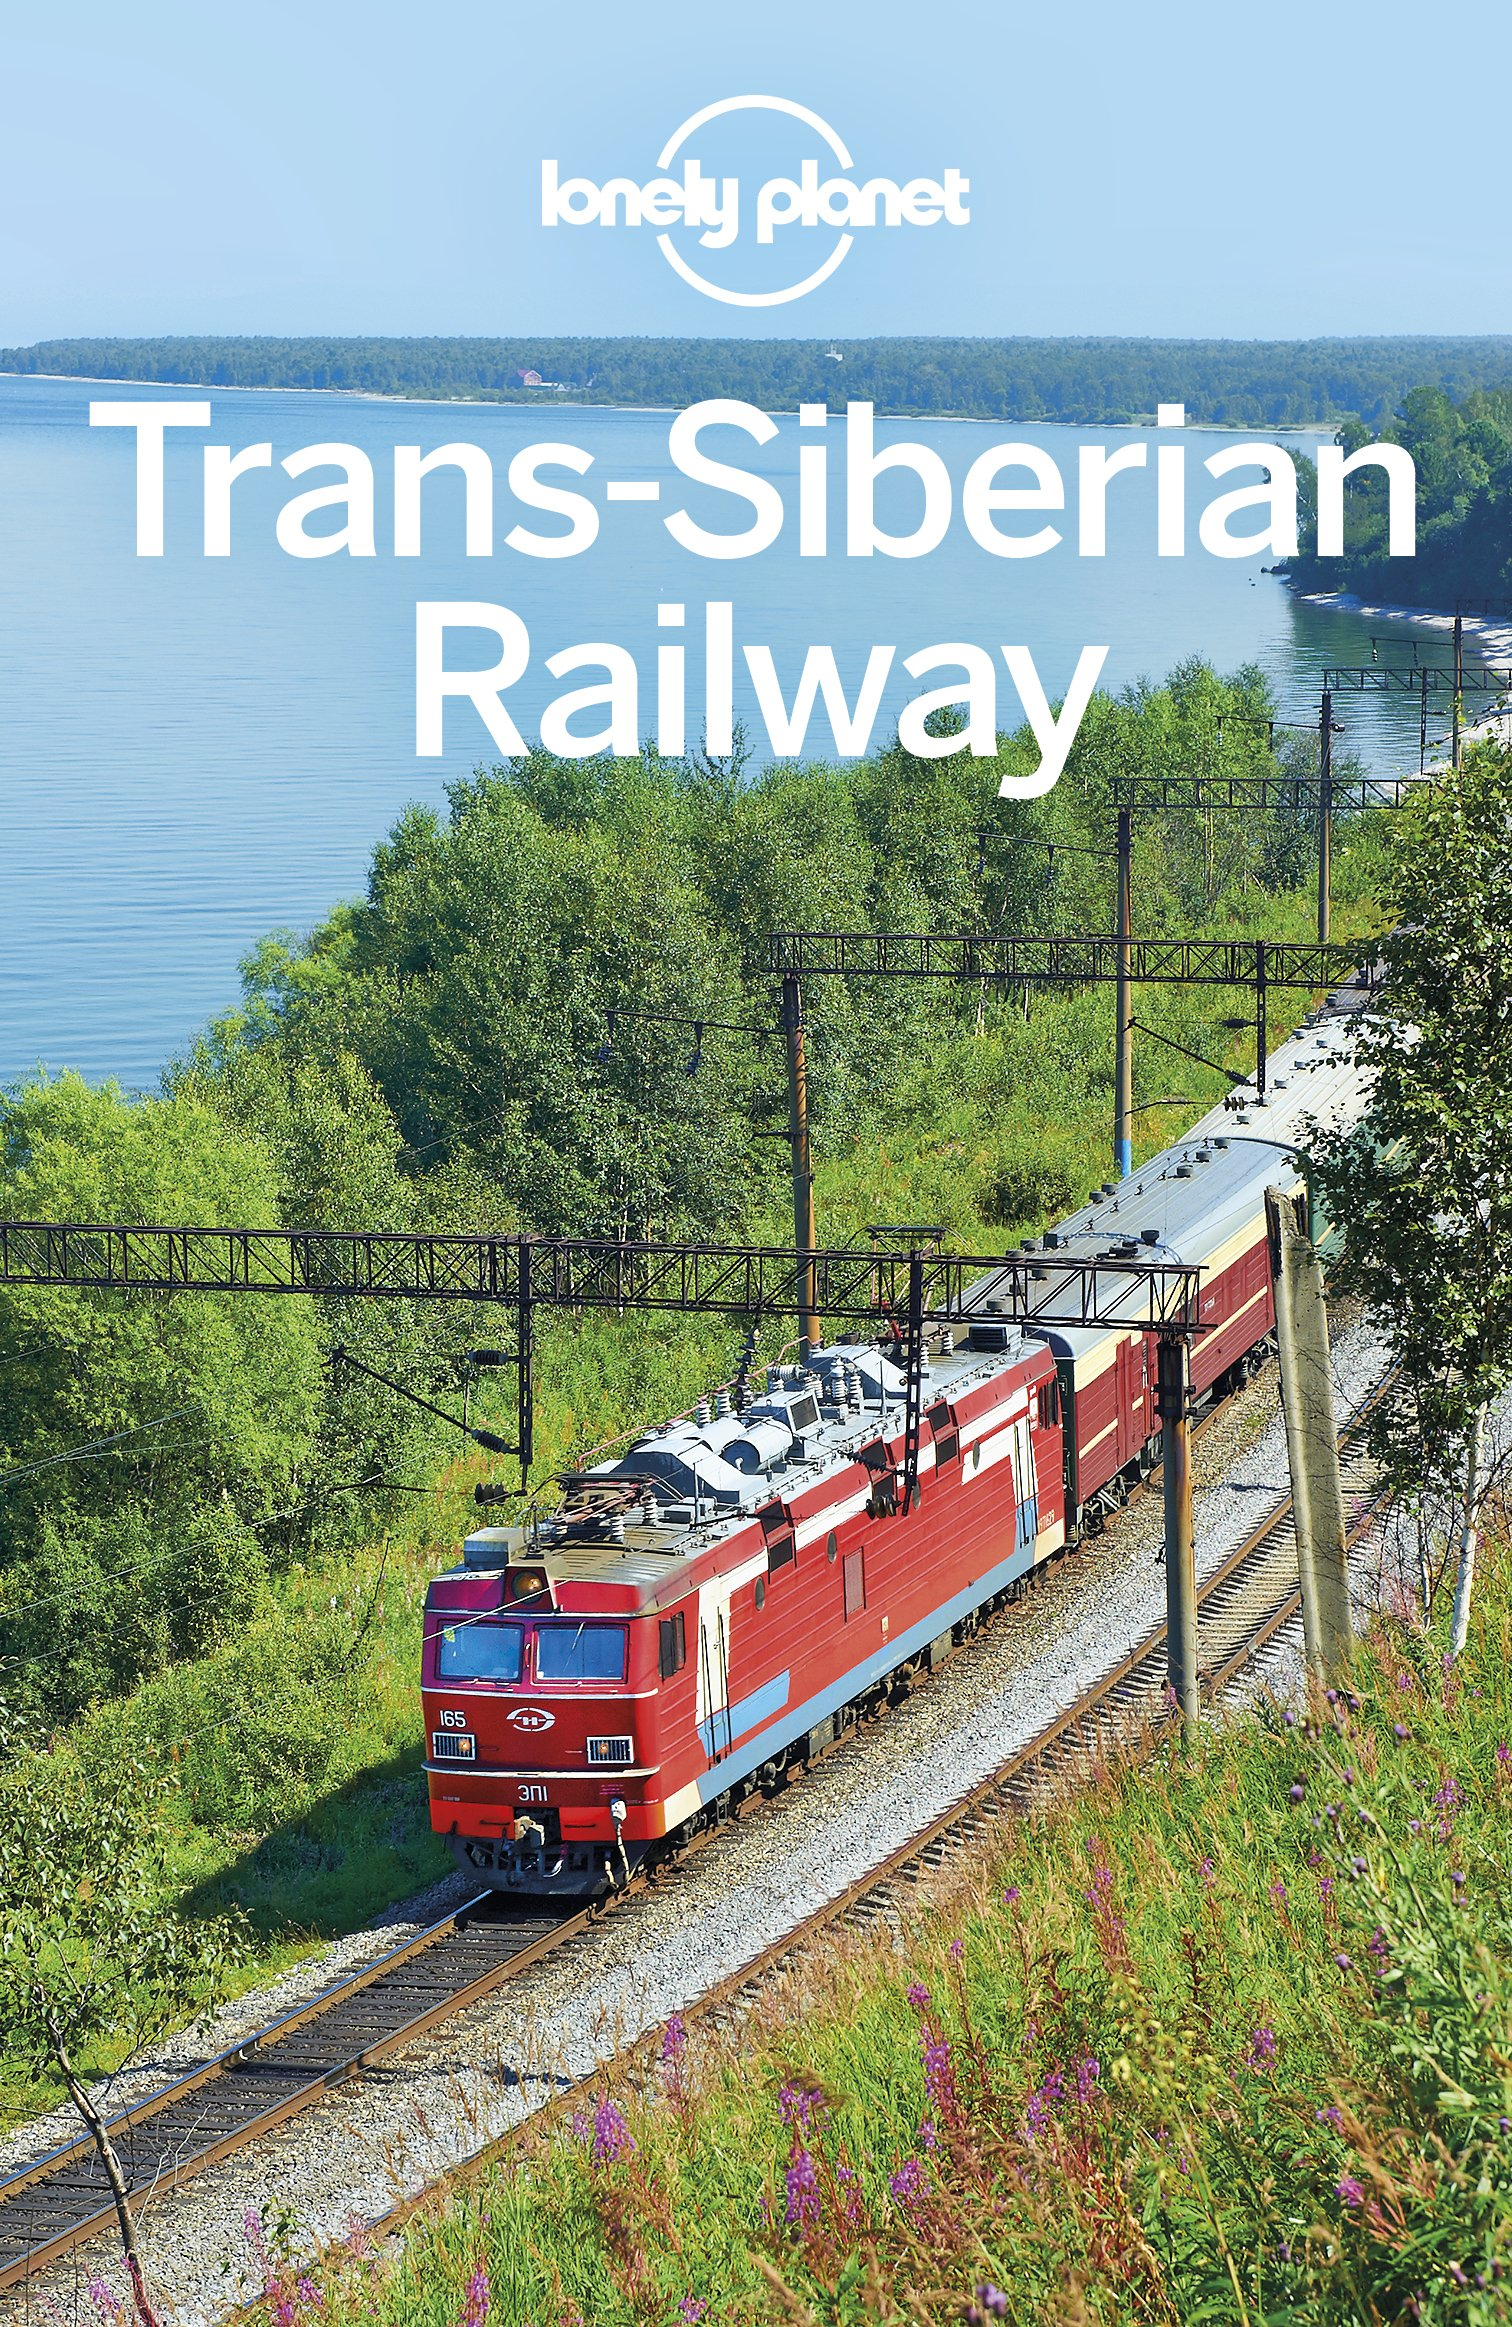 Download Lonely Planet Trans-Siberian Railway (Travel Guide) (English Edition) 